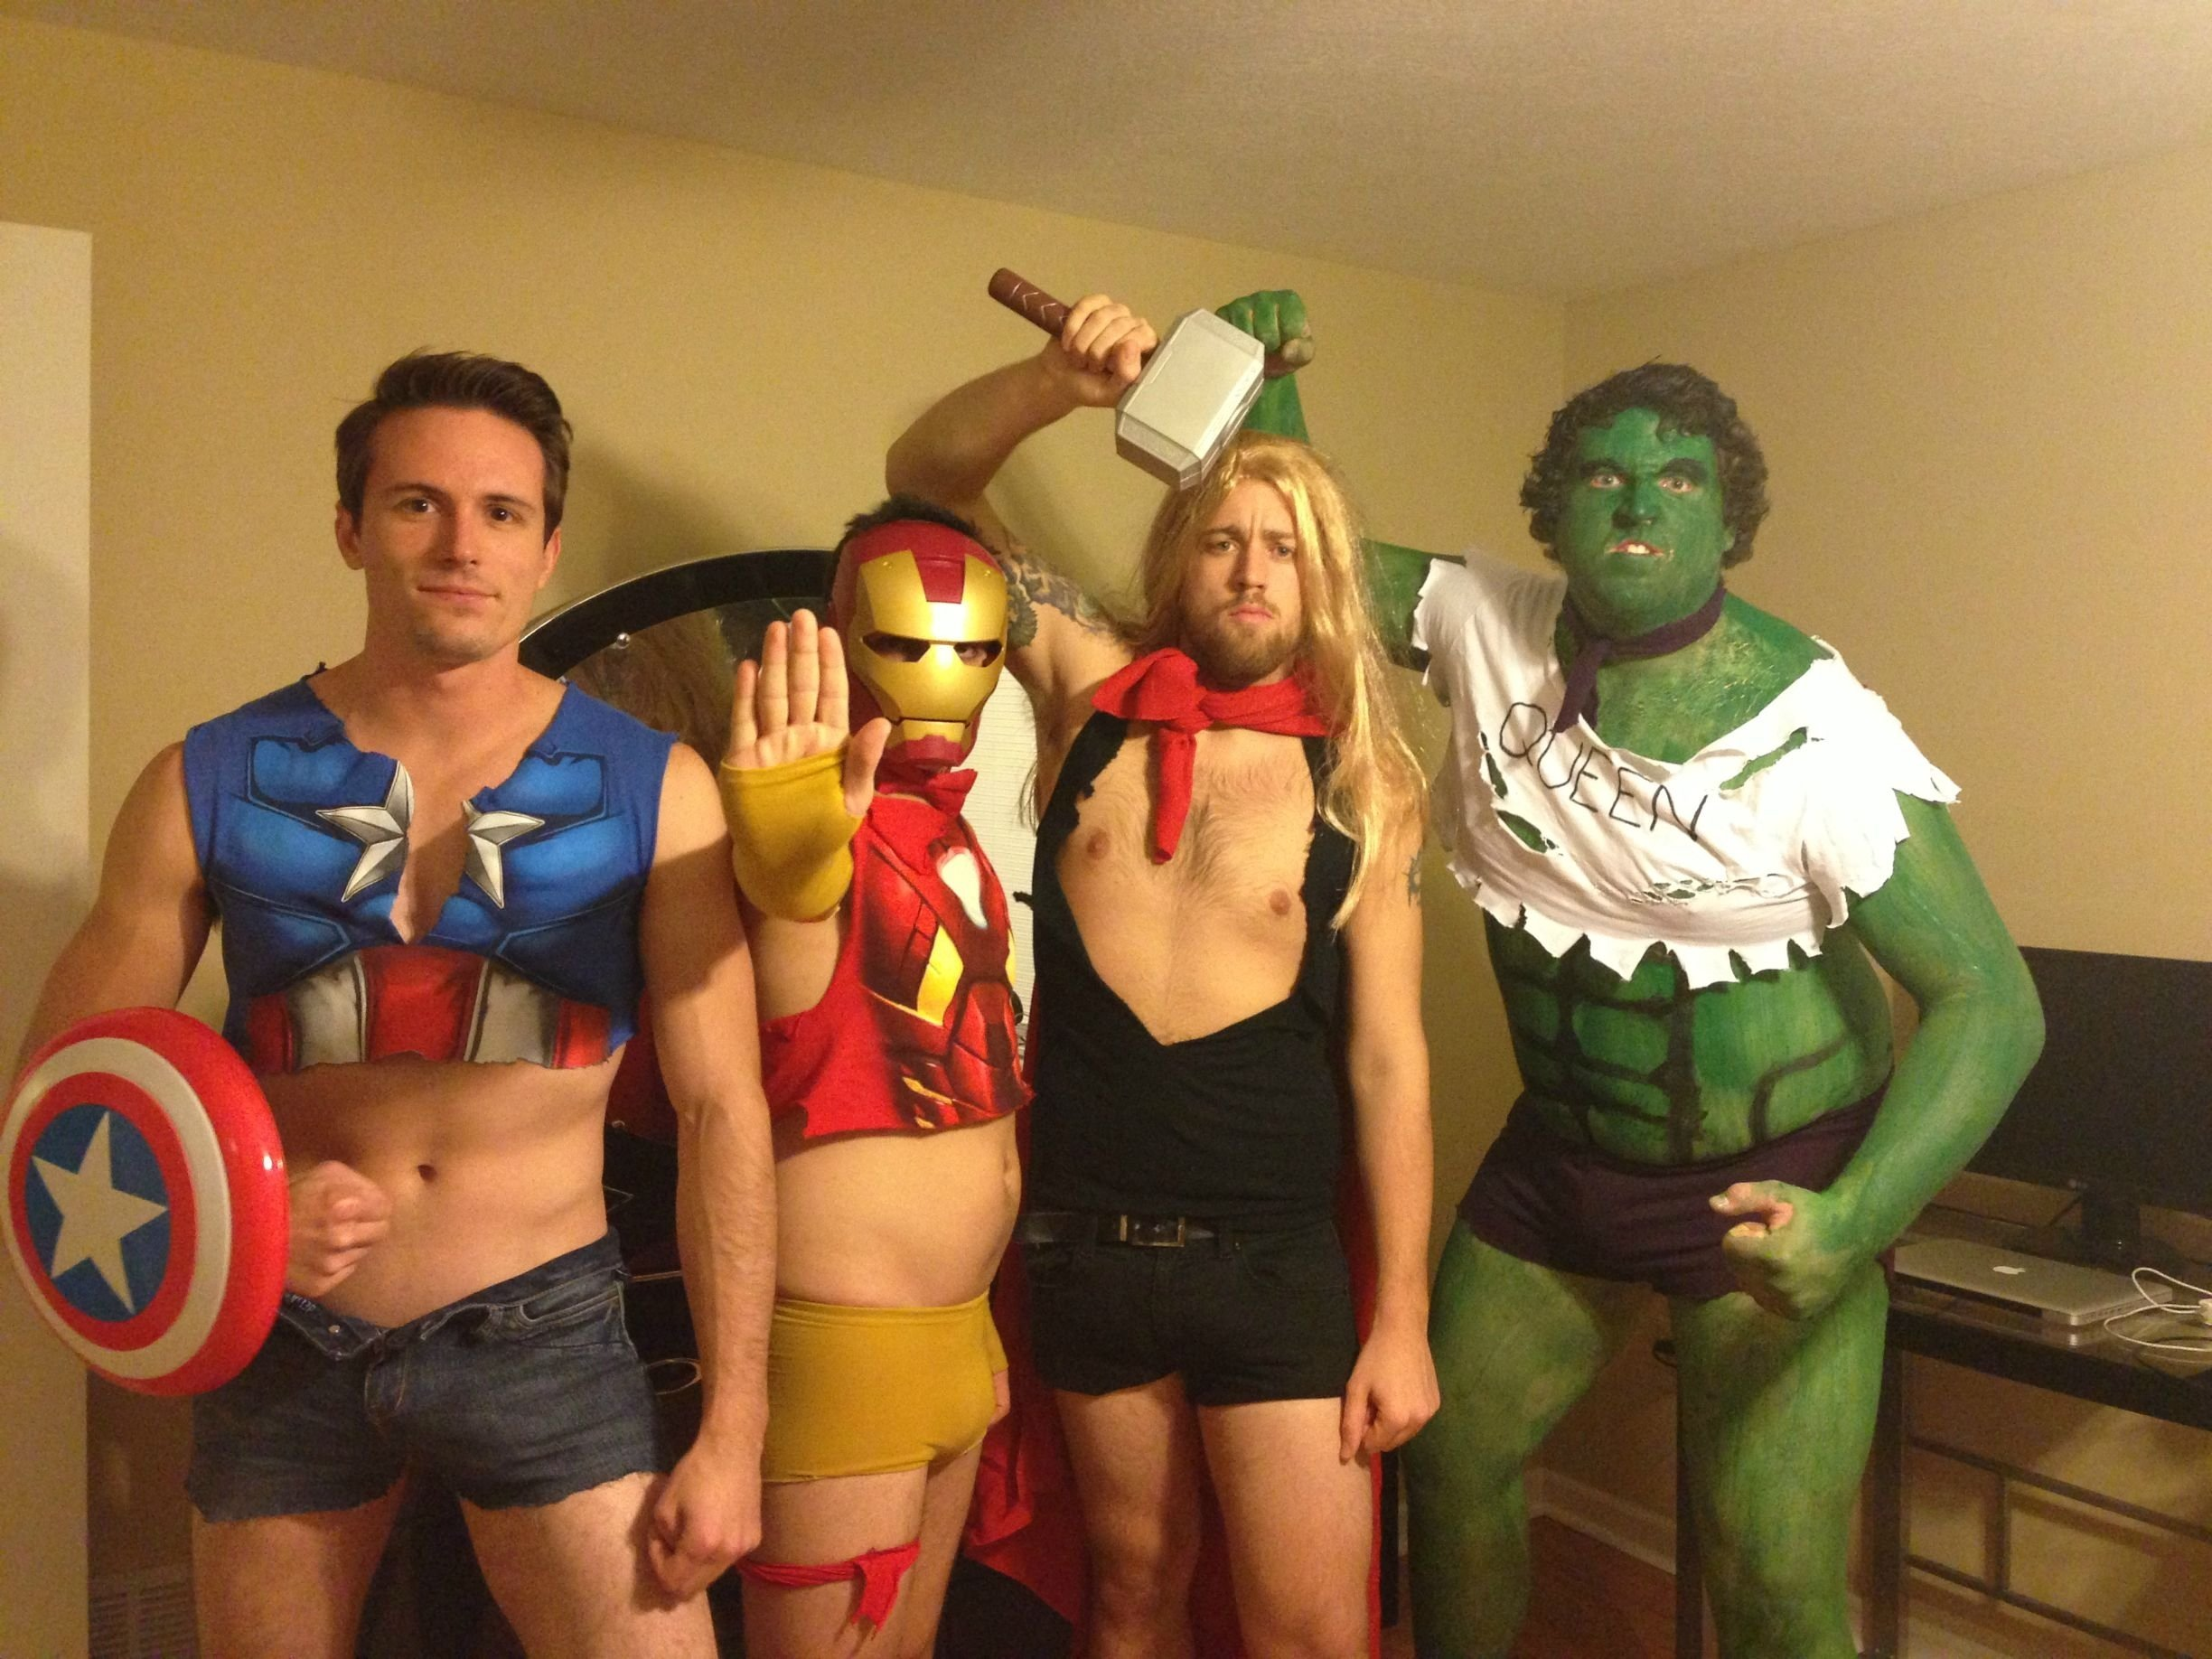 """my friends and i decided to go as """"sexy avengers"""" for halloween"""